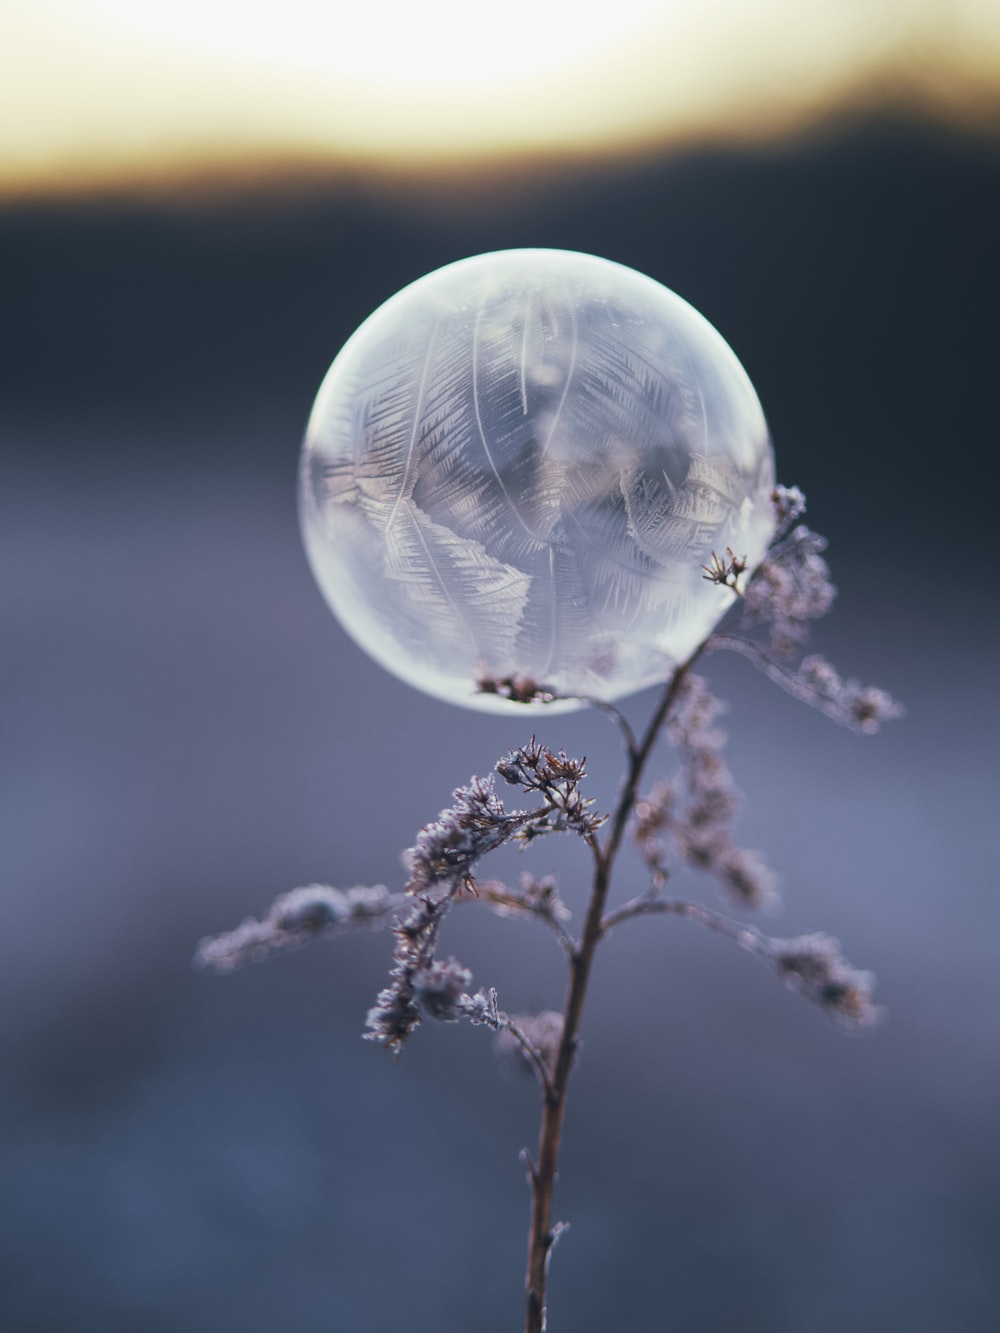 clear glass ball on brown plant